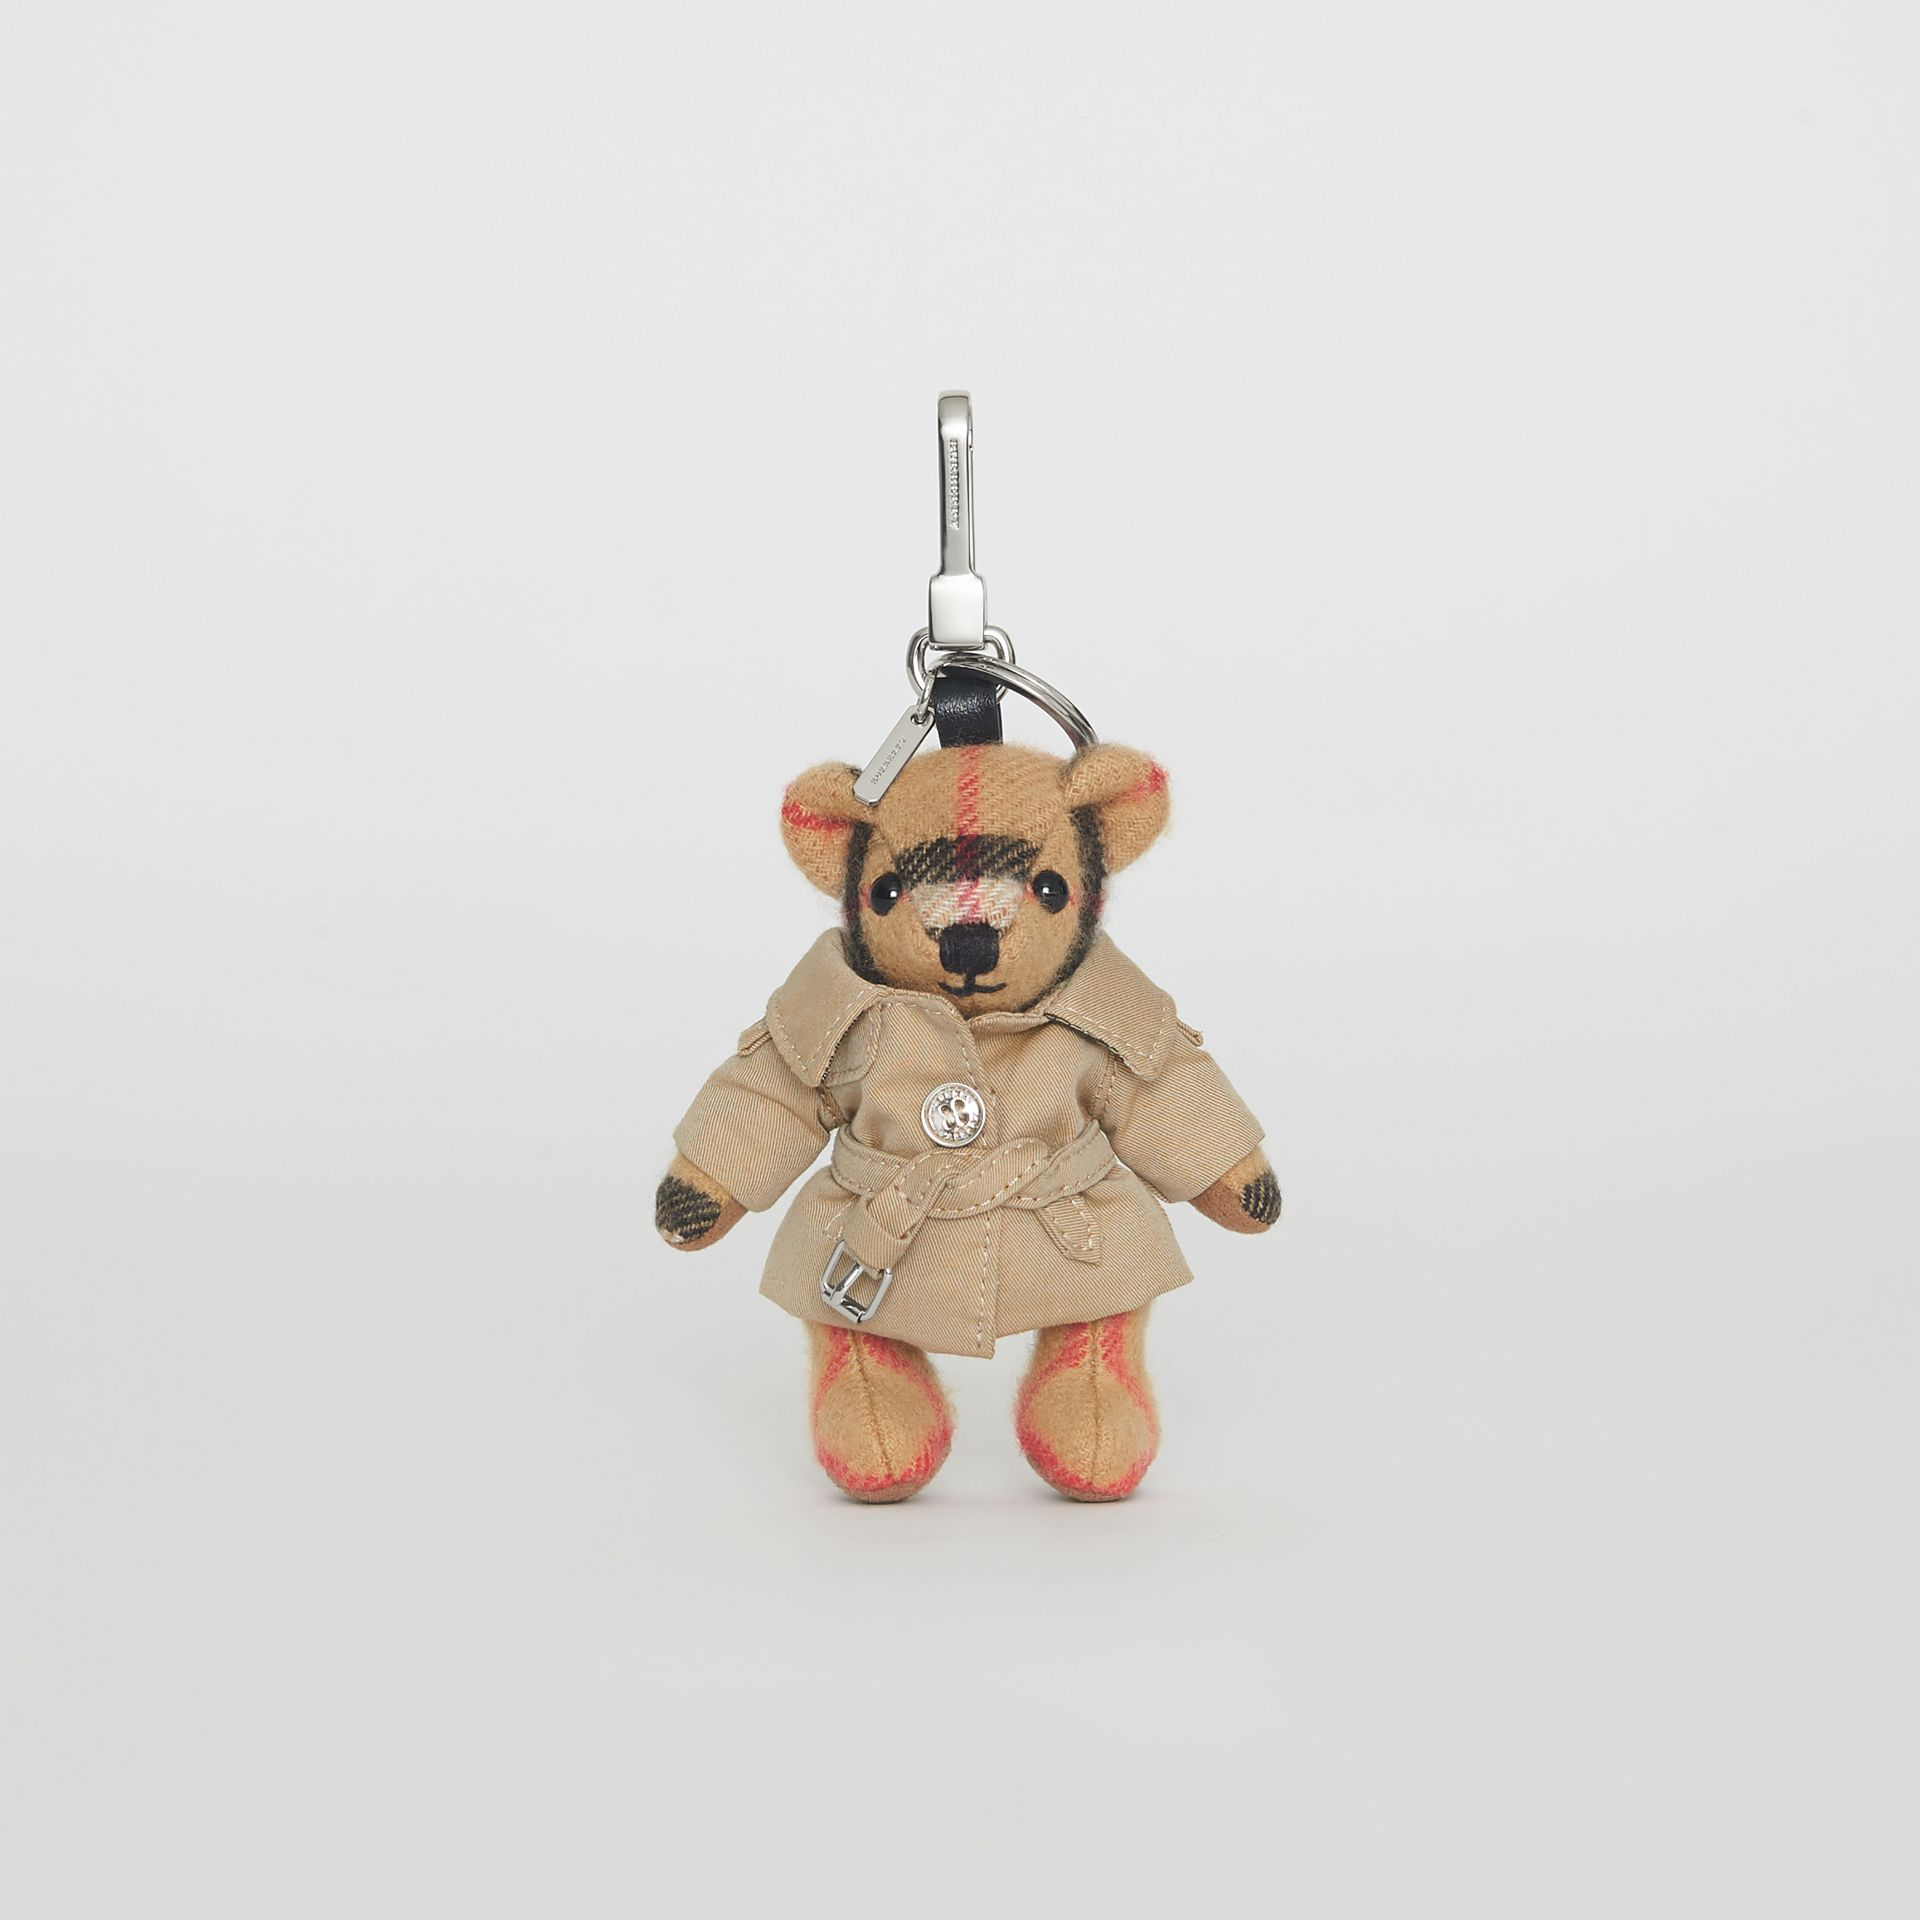 Bijou porte-clés Thomas Bear avec trench (Jaune Antique) | Burberry - photo de la galerie 3